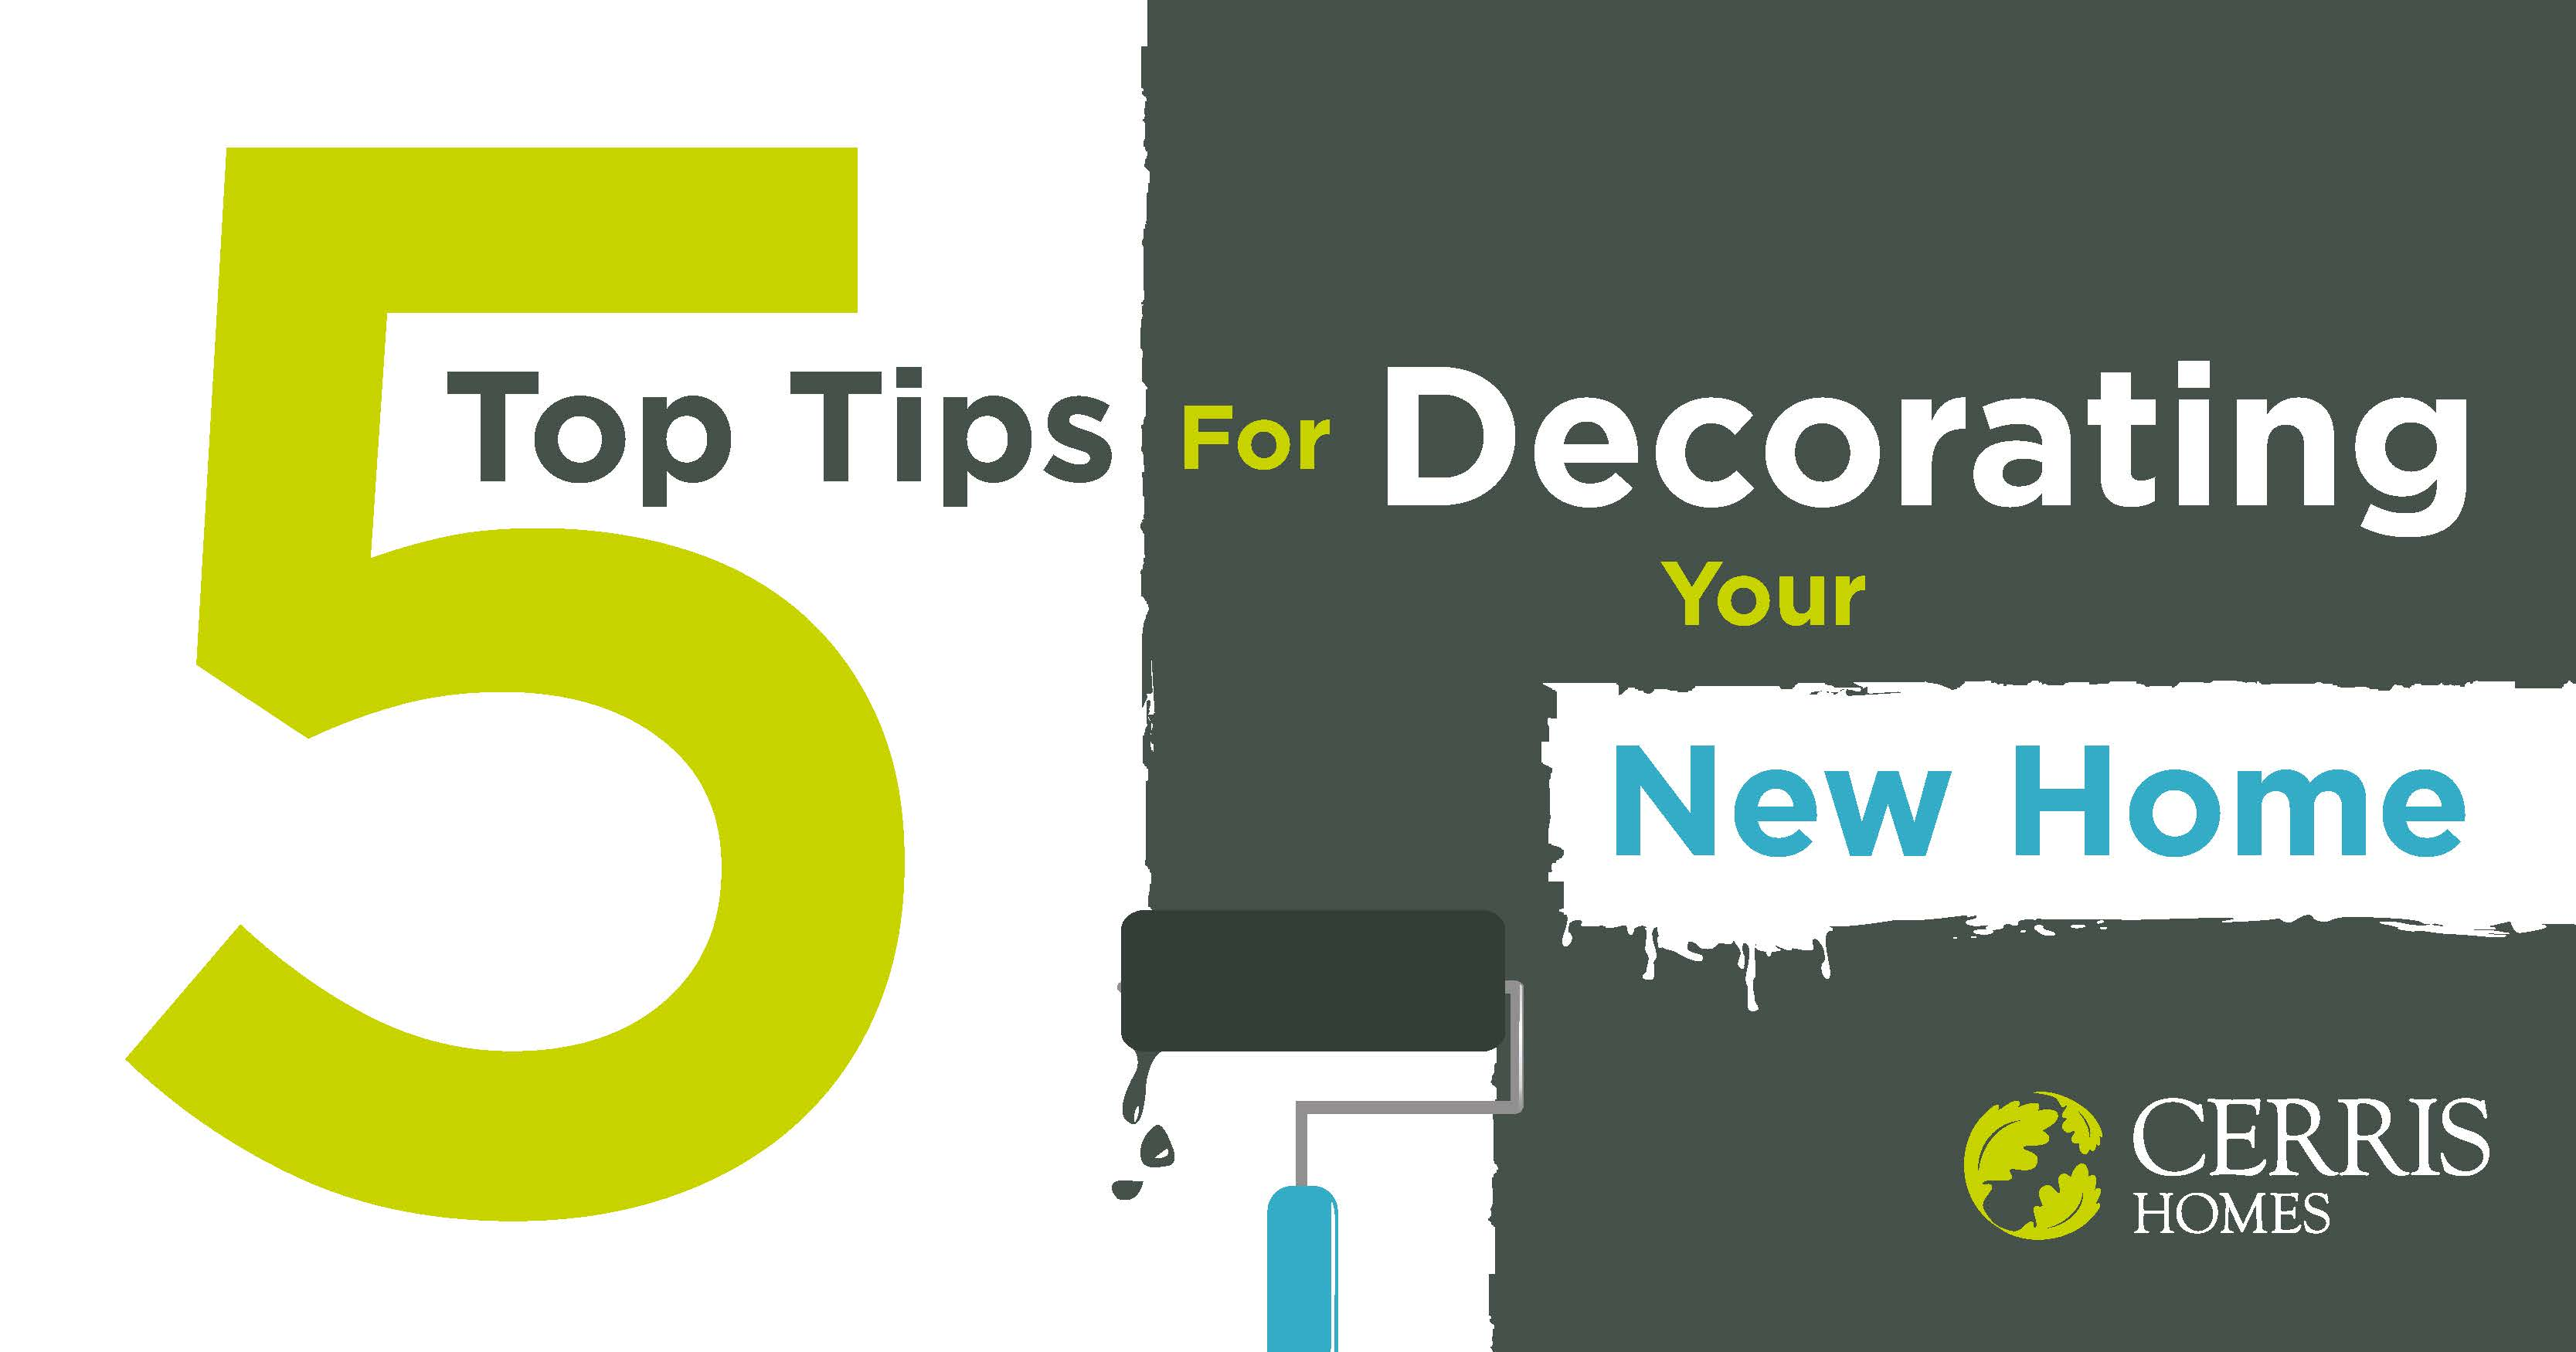 Cerris Top Tips Decorating Facebook_Page_1